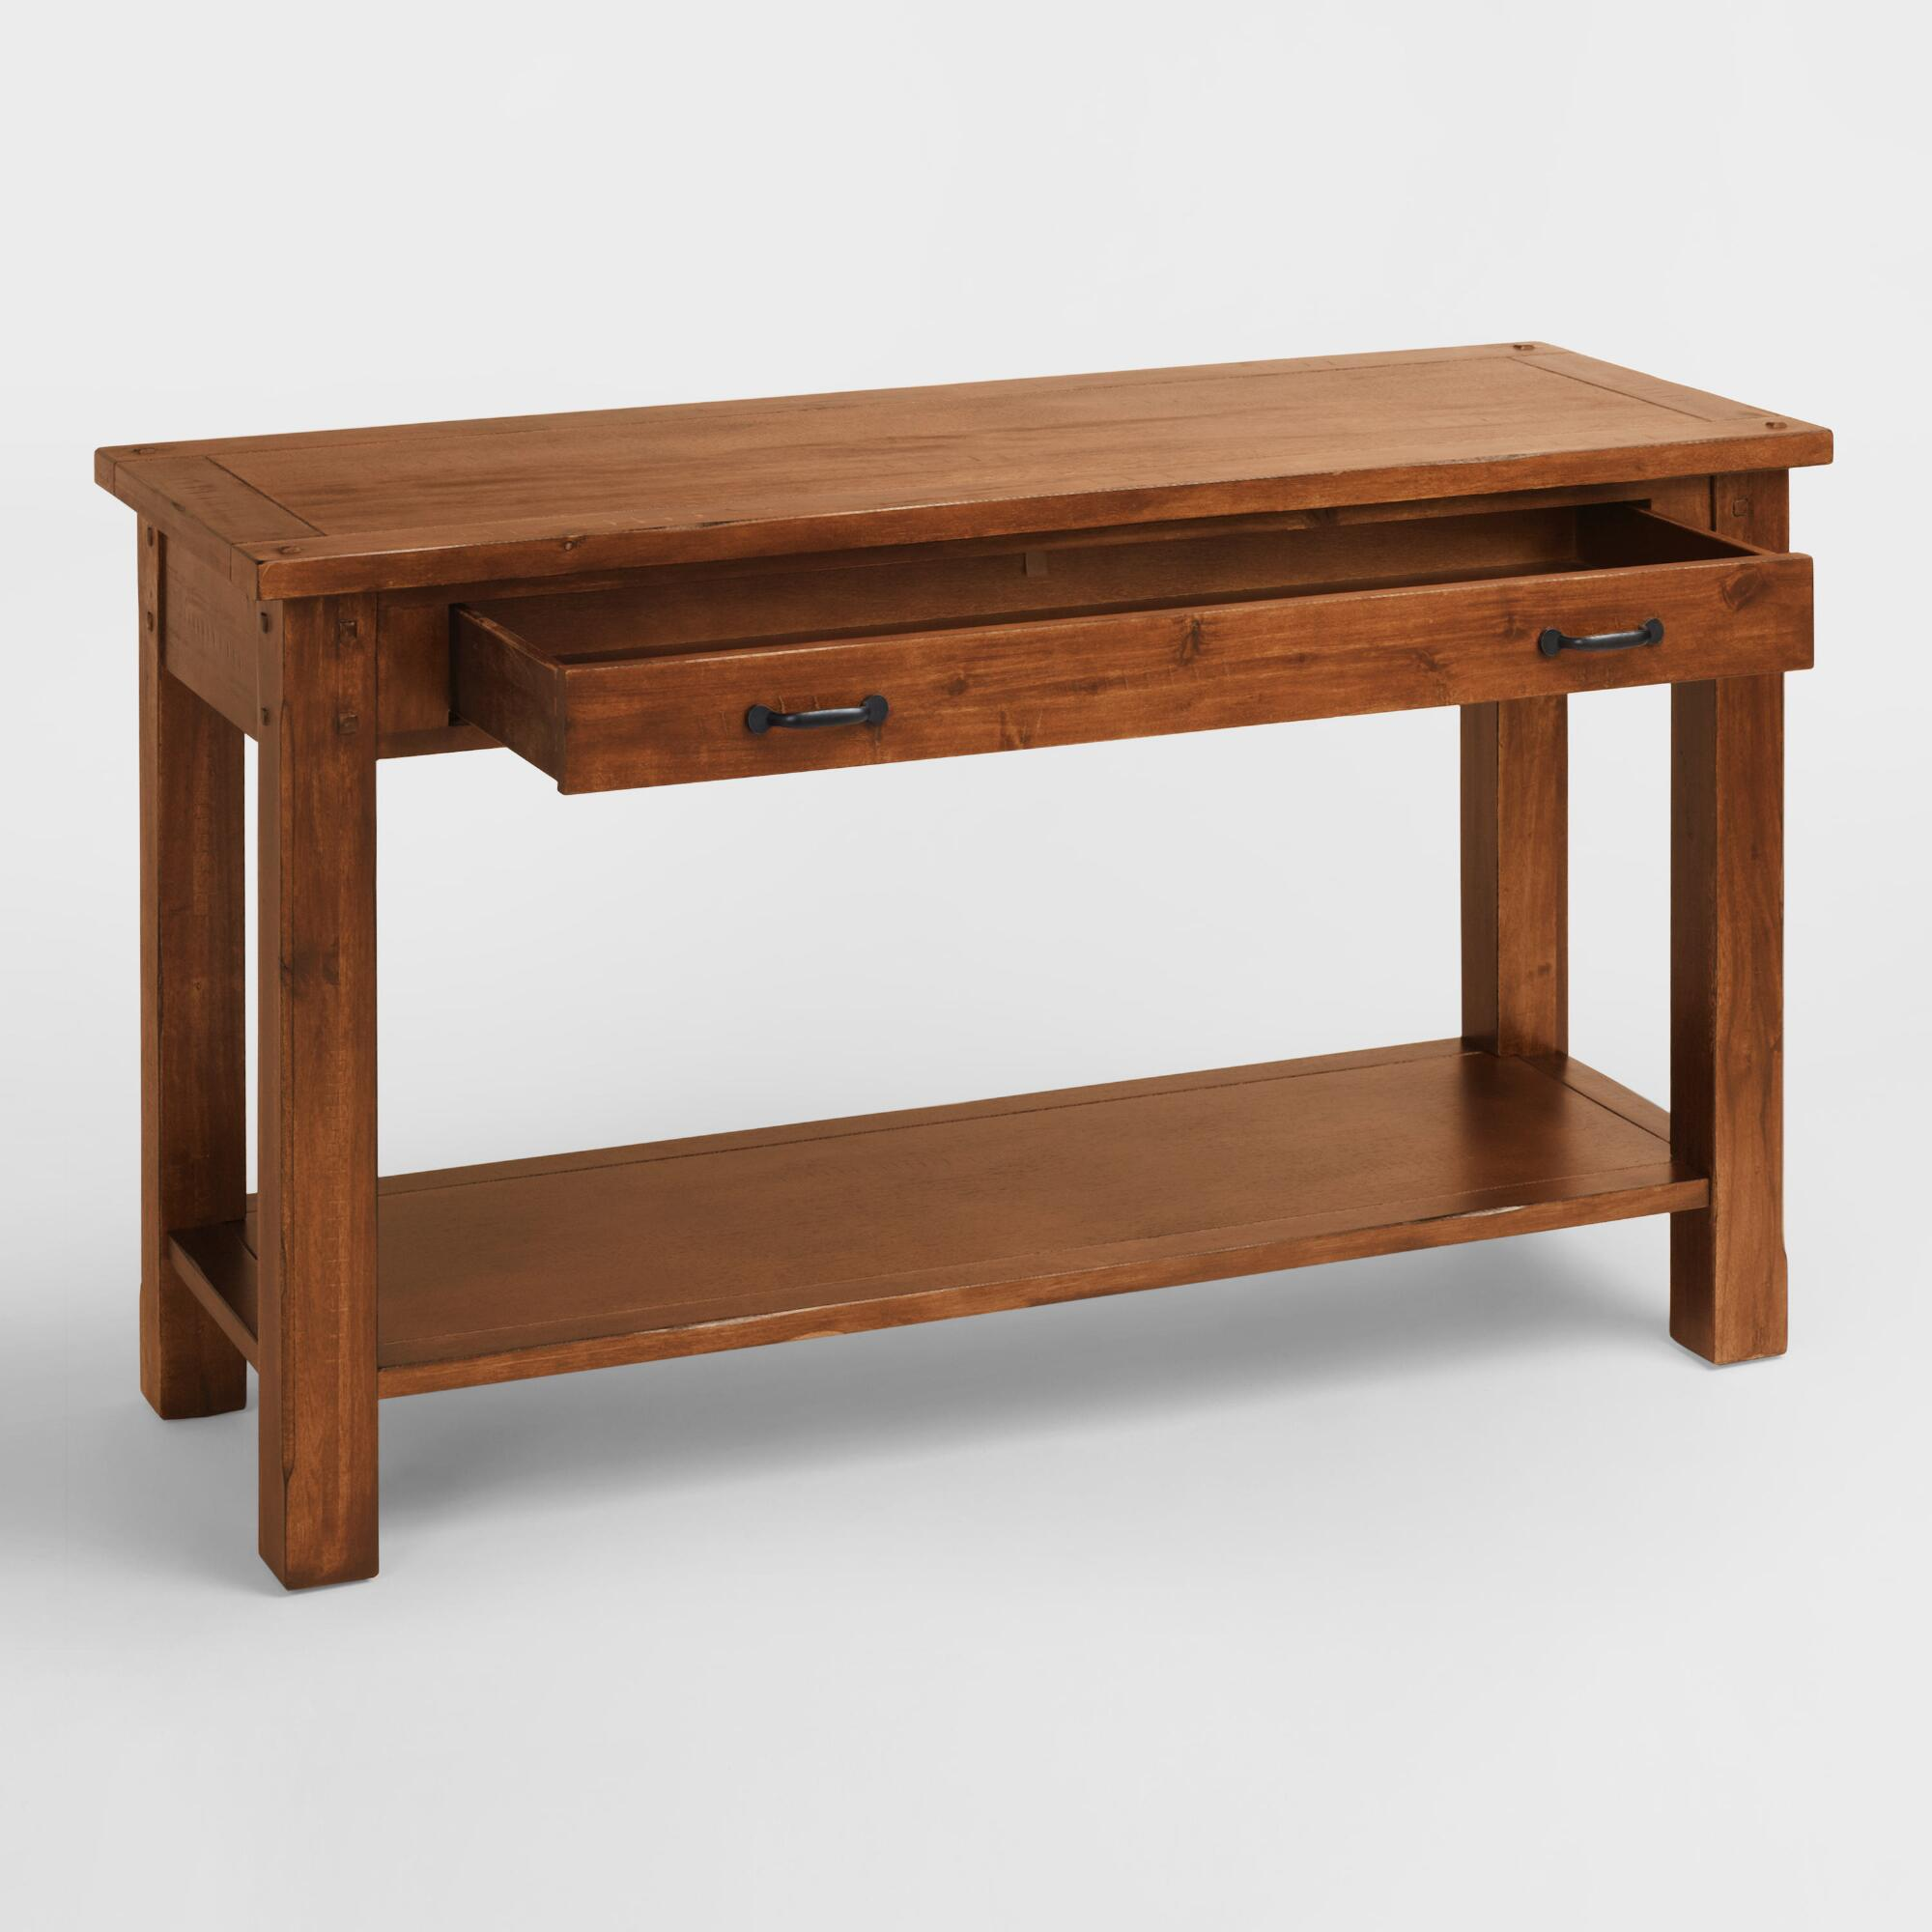 Cost Plus Industrial Coffee Table: Cost Plus Sourav Coffee Table